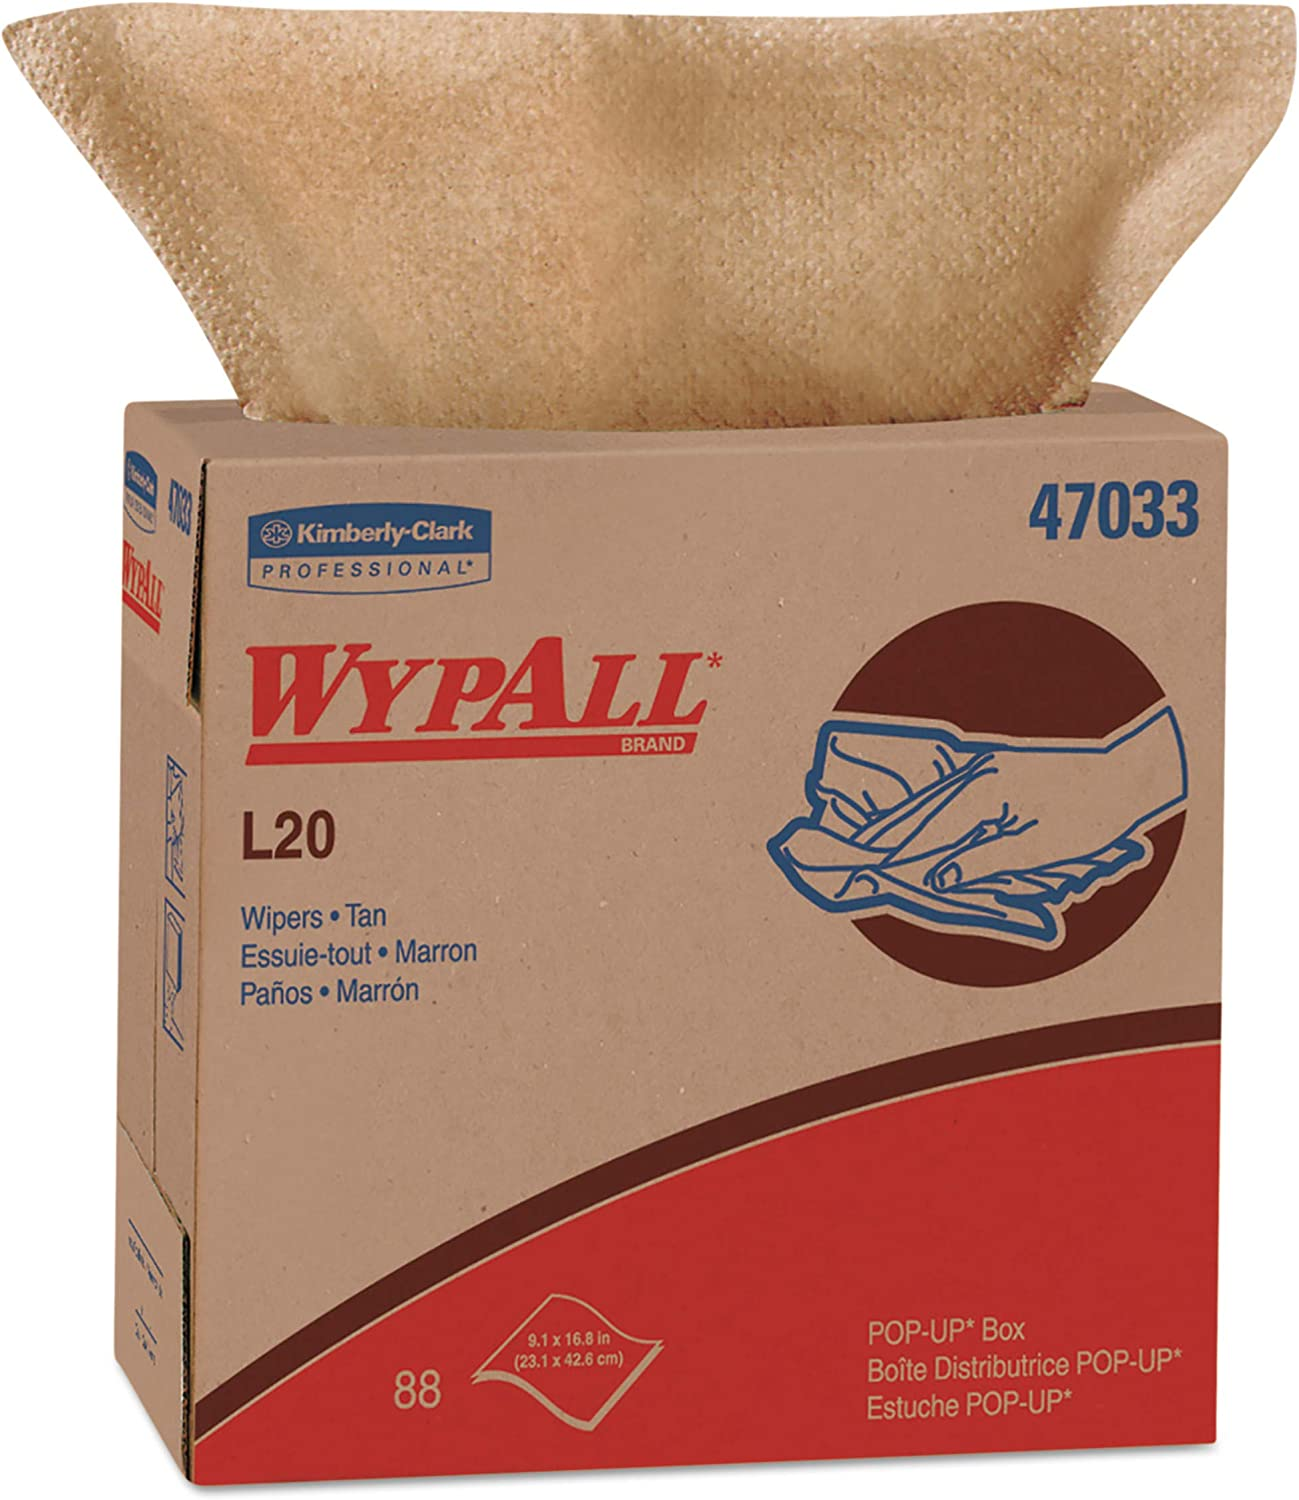 WypAll 47033 L20 Towels, POP-UP Box, 2-Ply, 9 1 10 x 16 4 5, Brown, 88 per Box (Case of 10 Boxes)